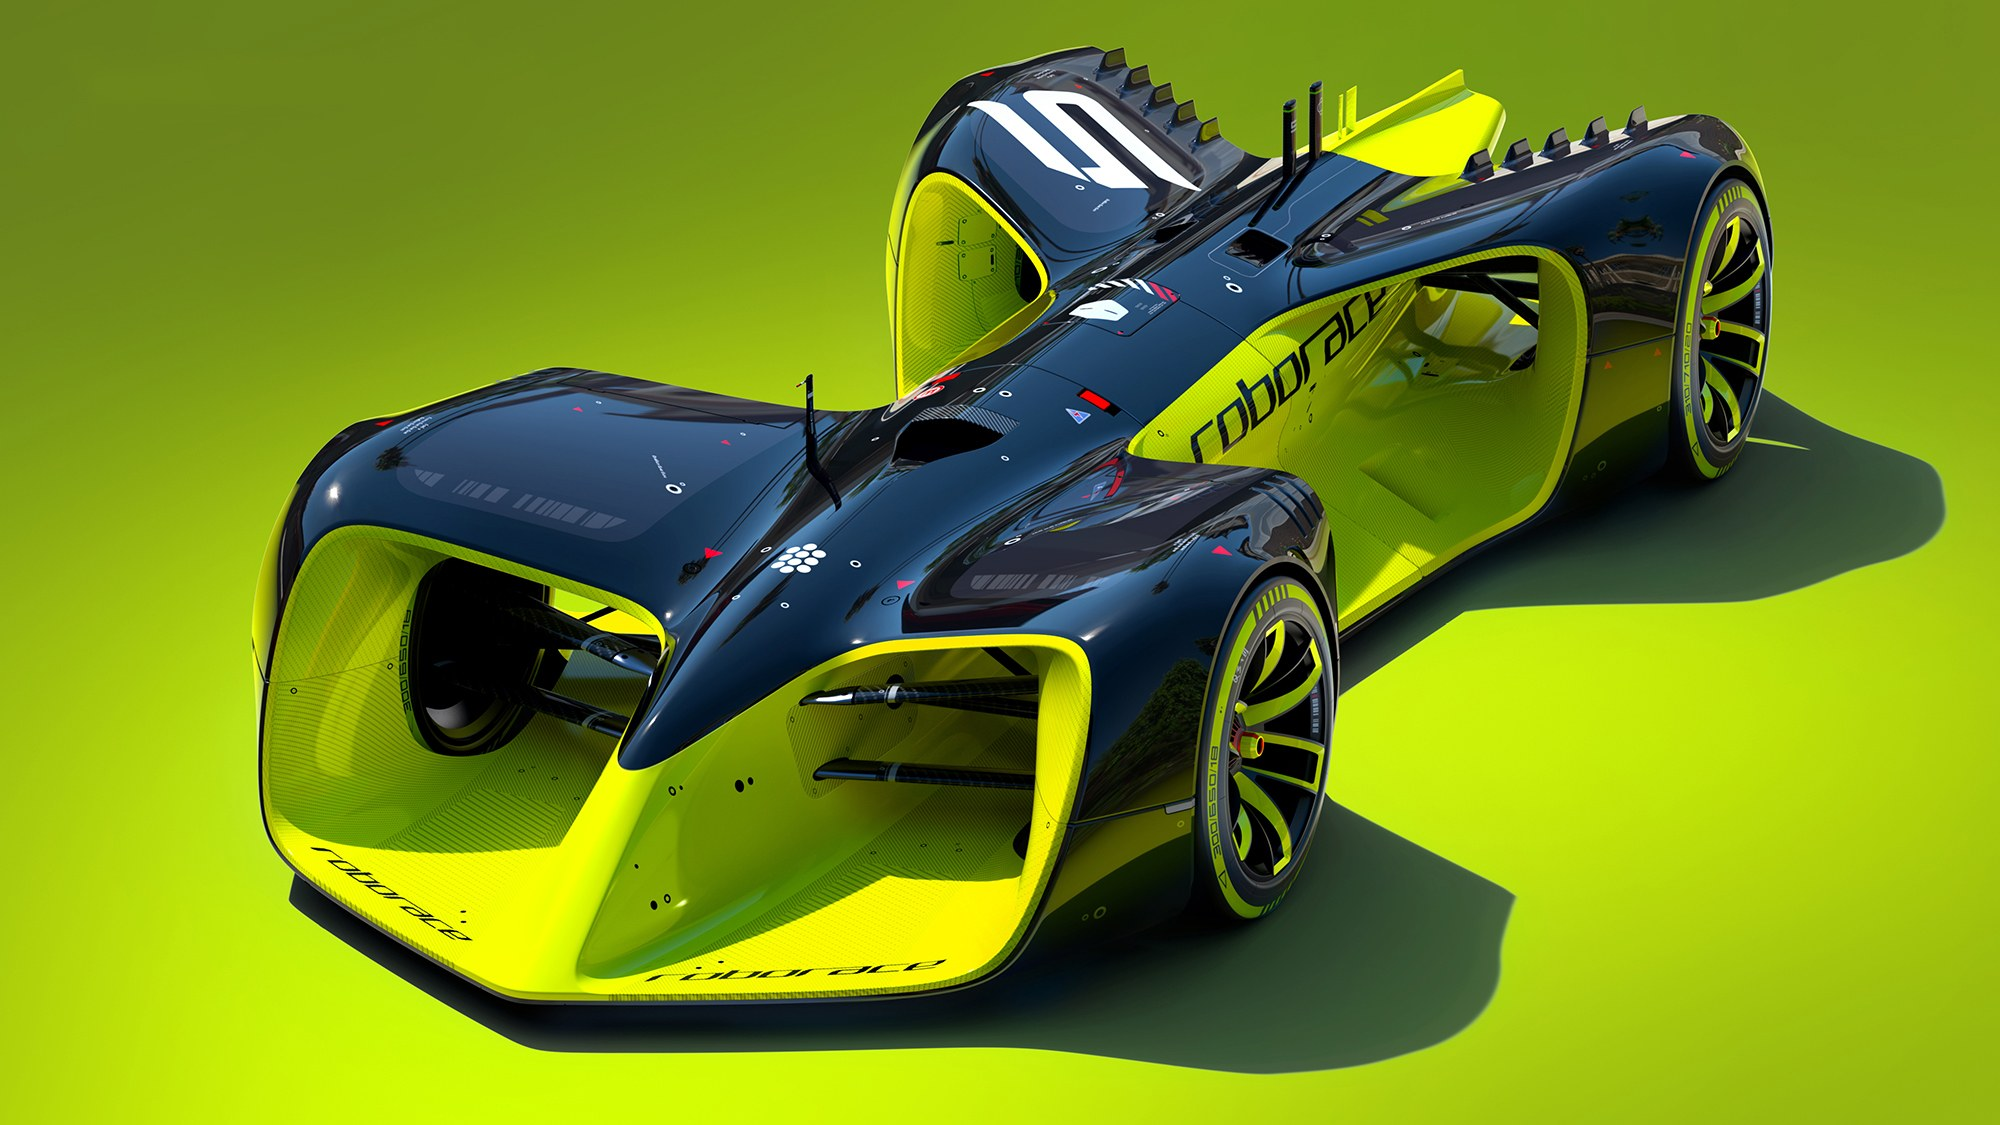 The Roborace's Self-Driving Race Car Is Every Kind of Absurd | WIRED